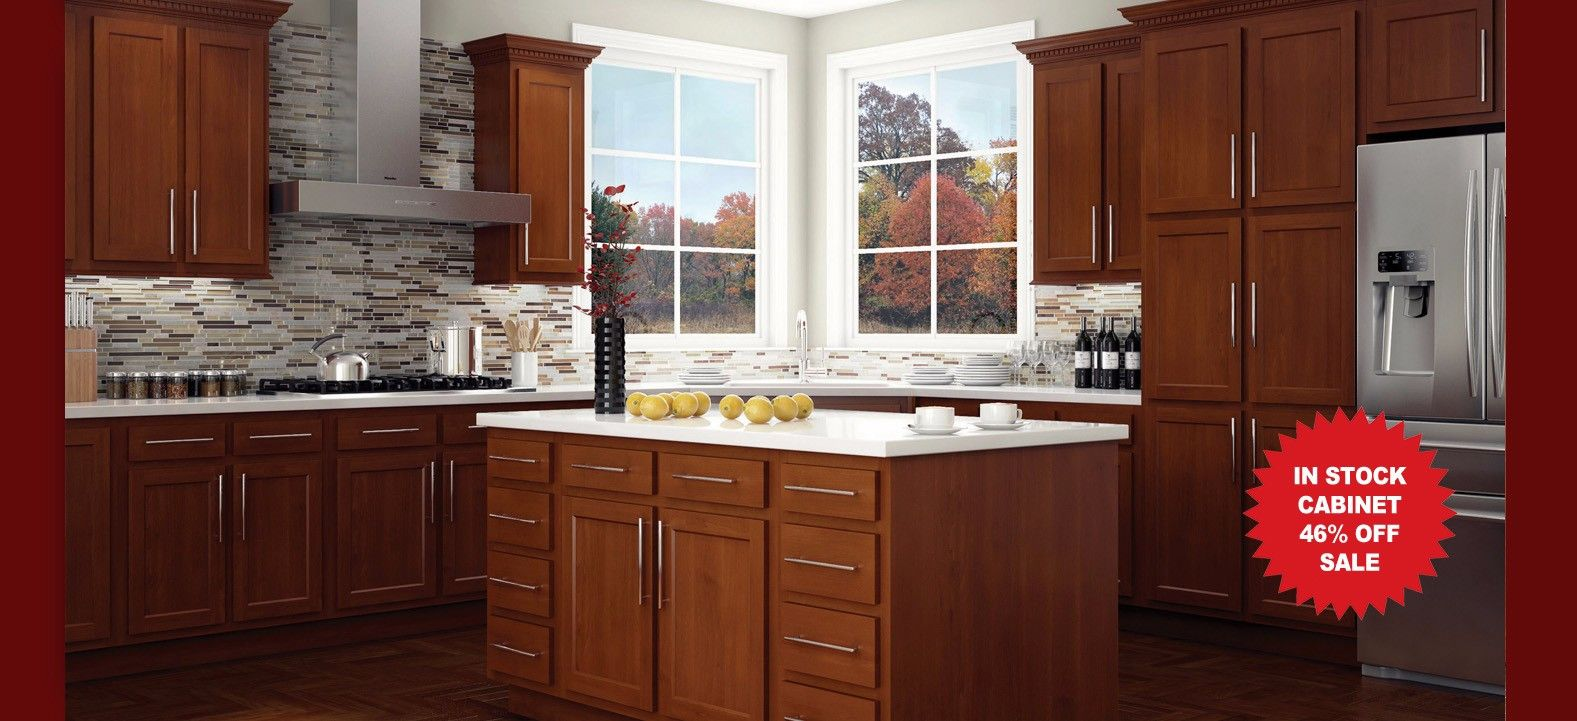 2019 Cheap Kitchen Cabinets Phoenix - Unique Kitchen Backsplash ...